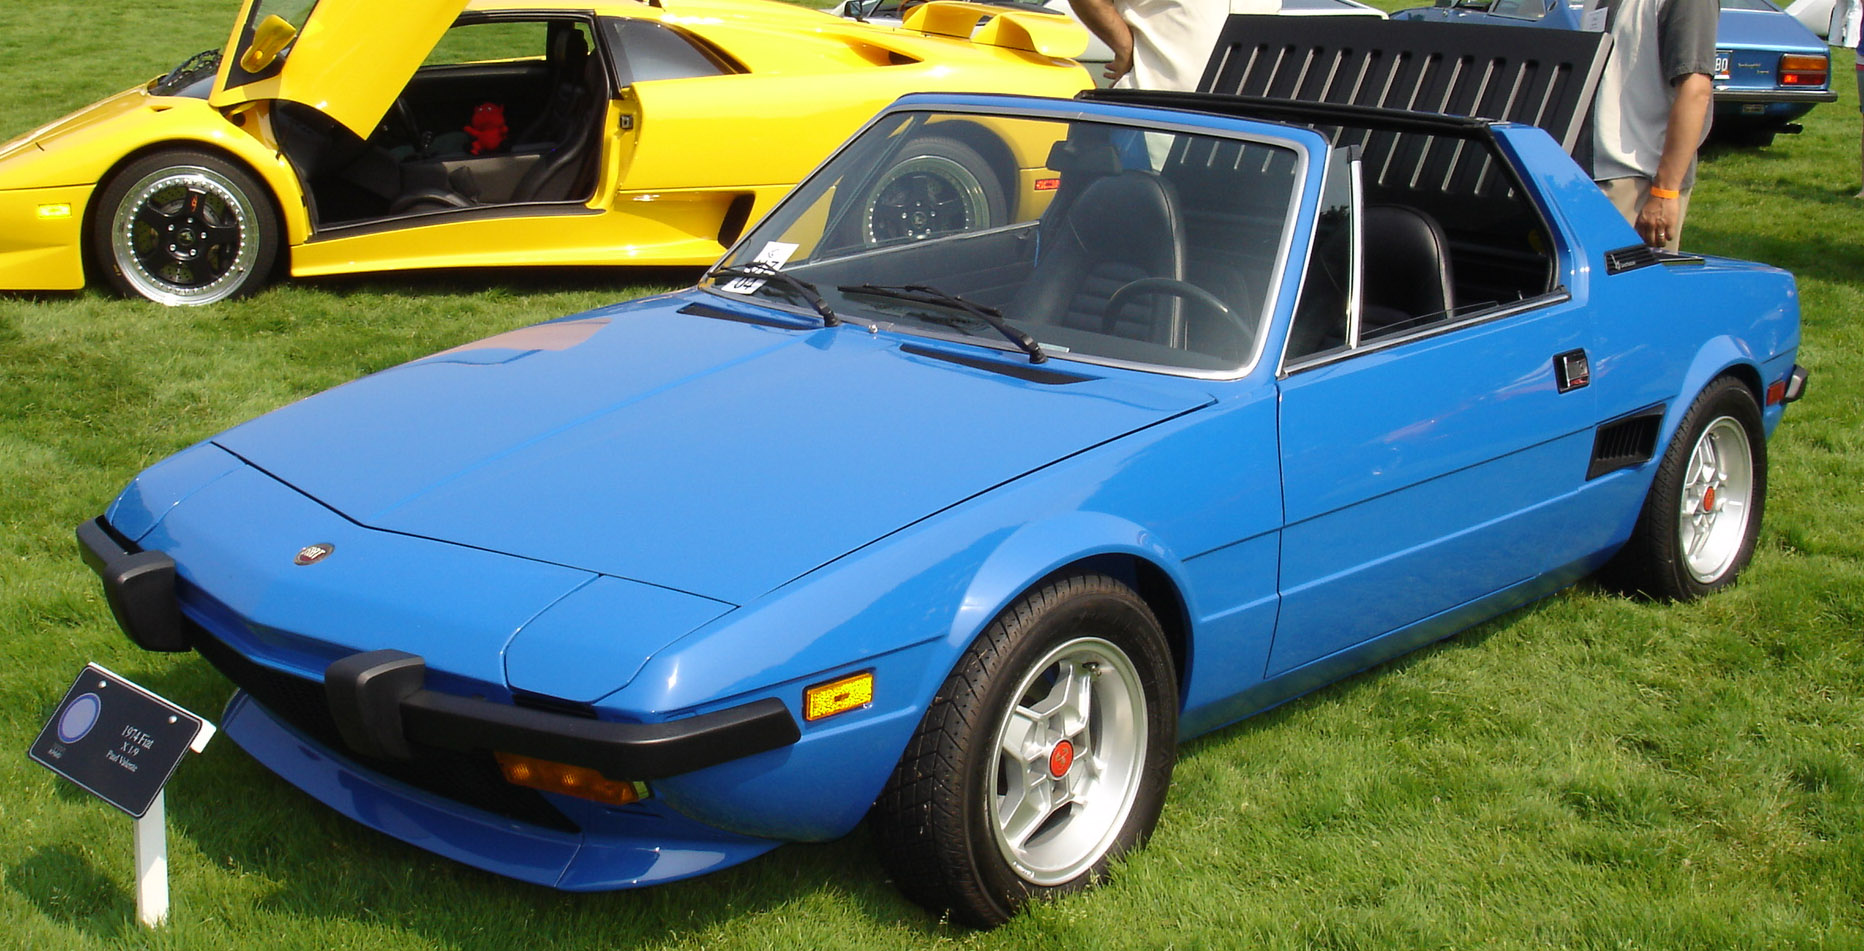 Fiat X1/9 - Wikipedia, the free encyclopedia